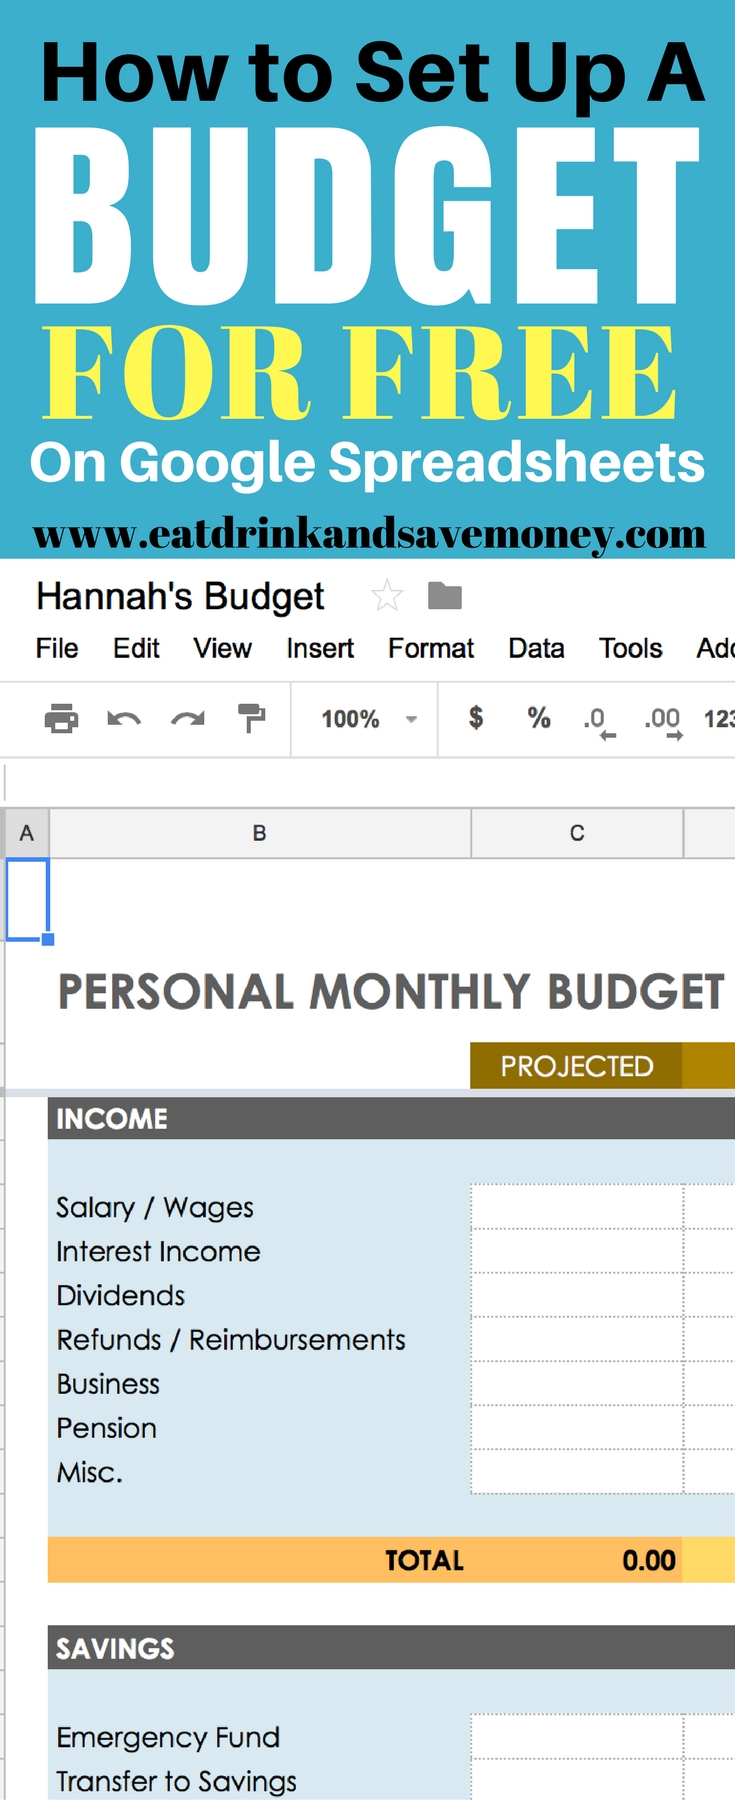 How to set up a budget for free on google spreadsheets. #budget #free #google #finance #savemoney